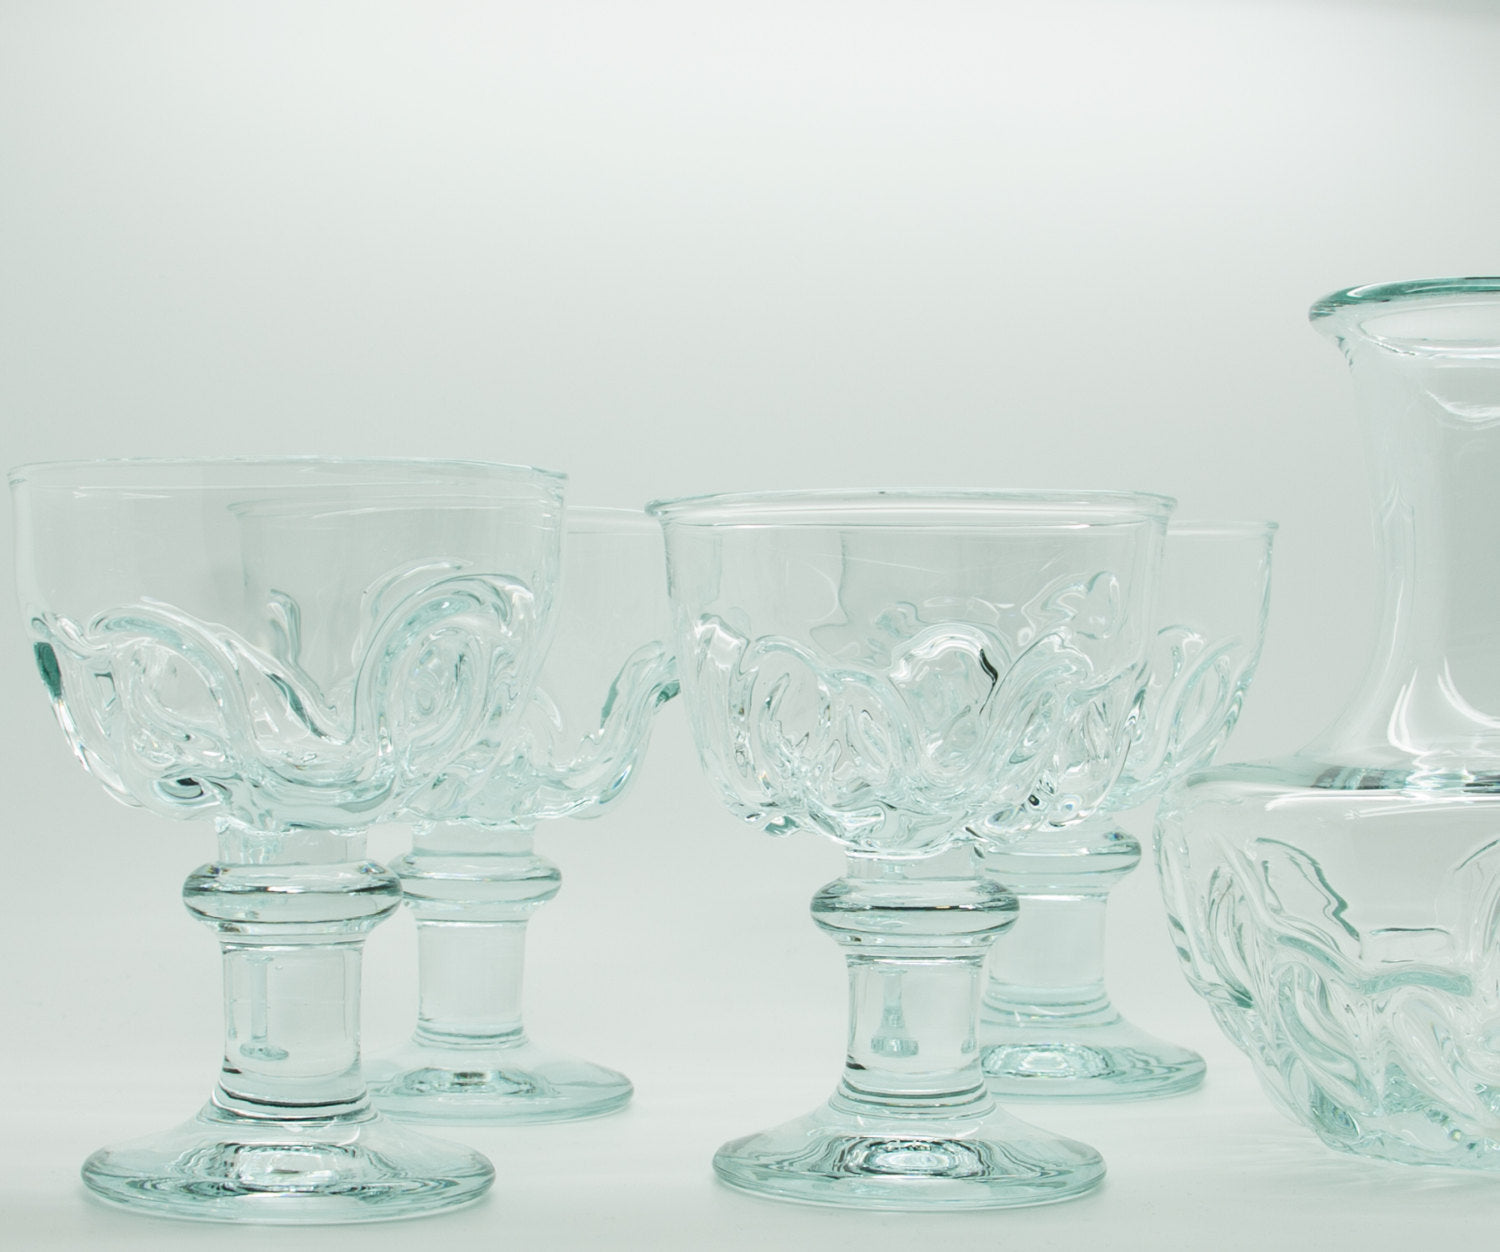 Holmegaard 150th Anniversary BANQUET Set Decanter + 4 Wine Crystal Glass Goblets - Mollaris.com